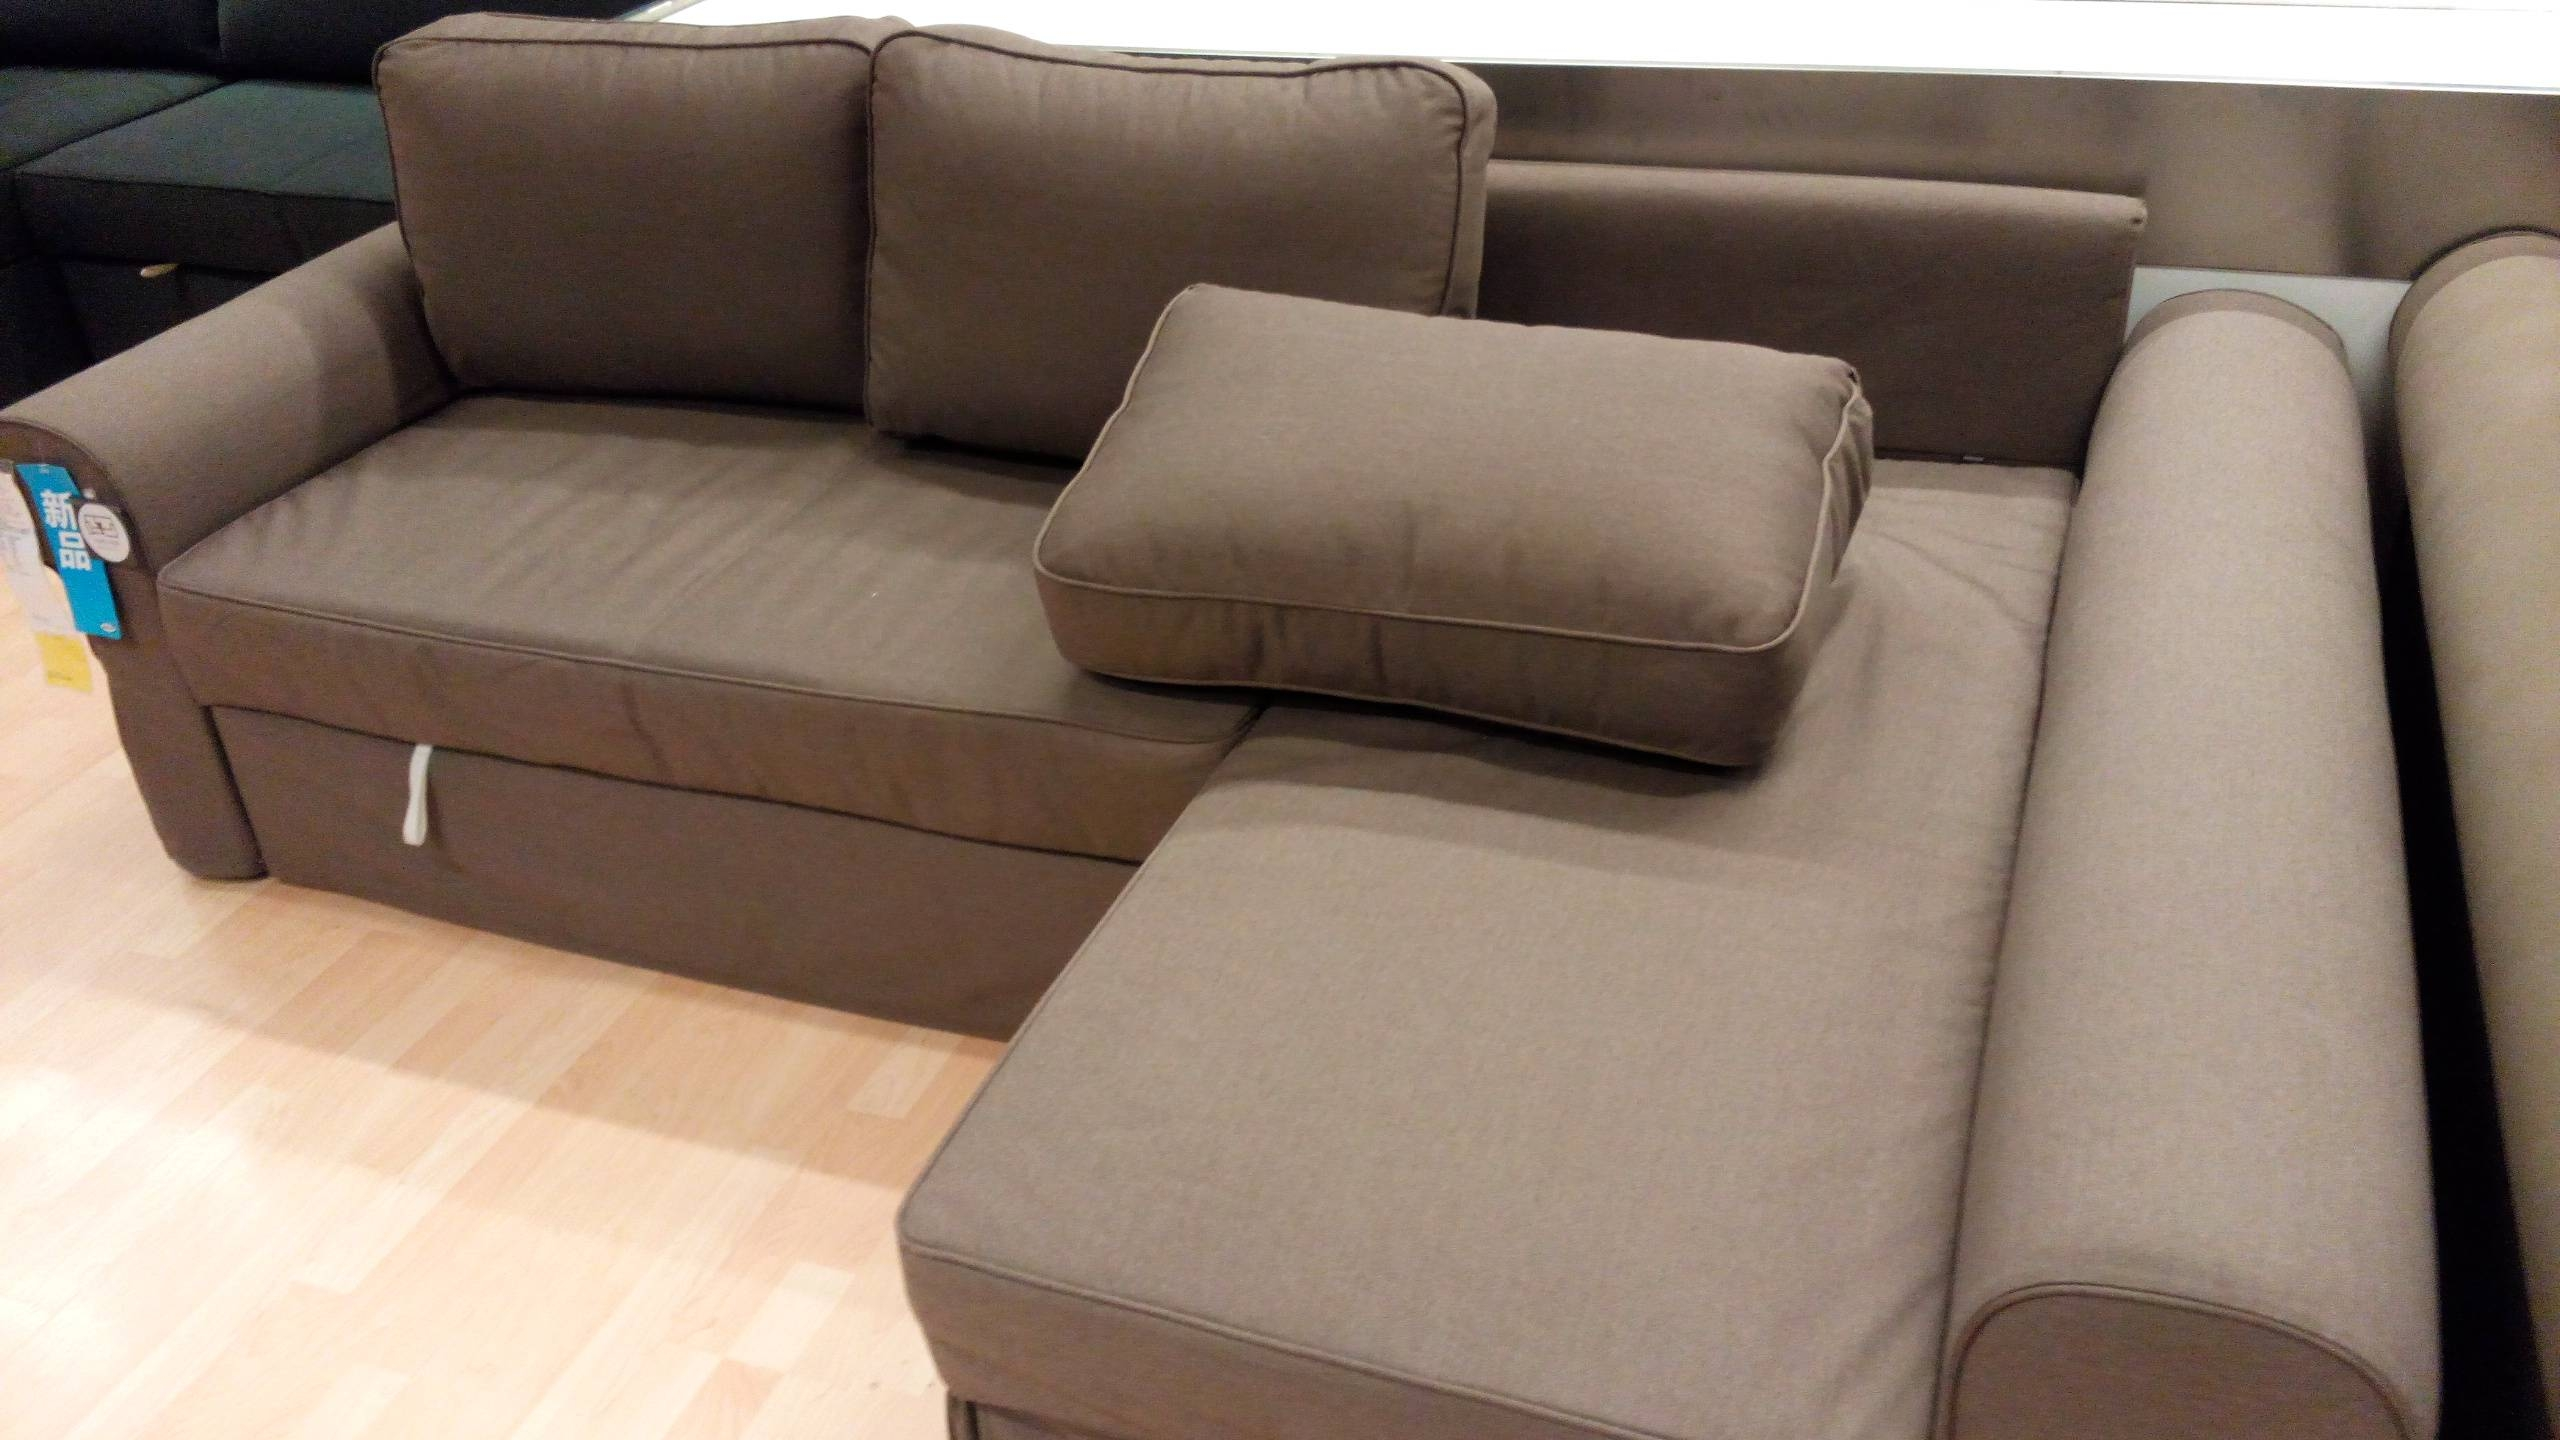 Ikea Vilasund And Backabro Review - Return Of The Sofa Bed Clones! with regard to Manstad Sofa Bed With Storage From Ikea (Image 9 of 25)